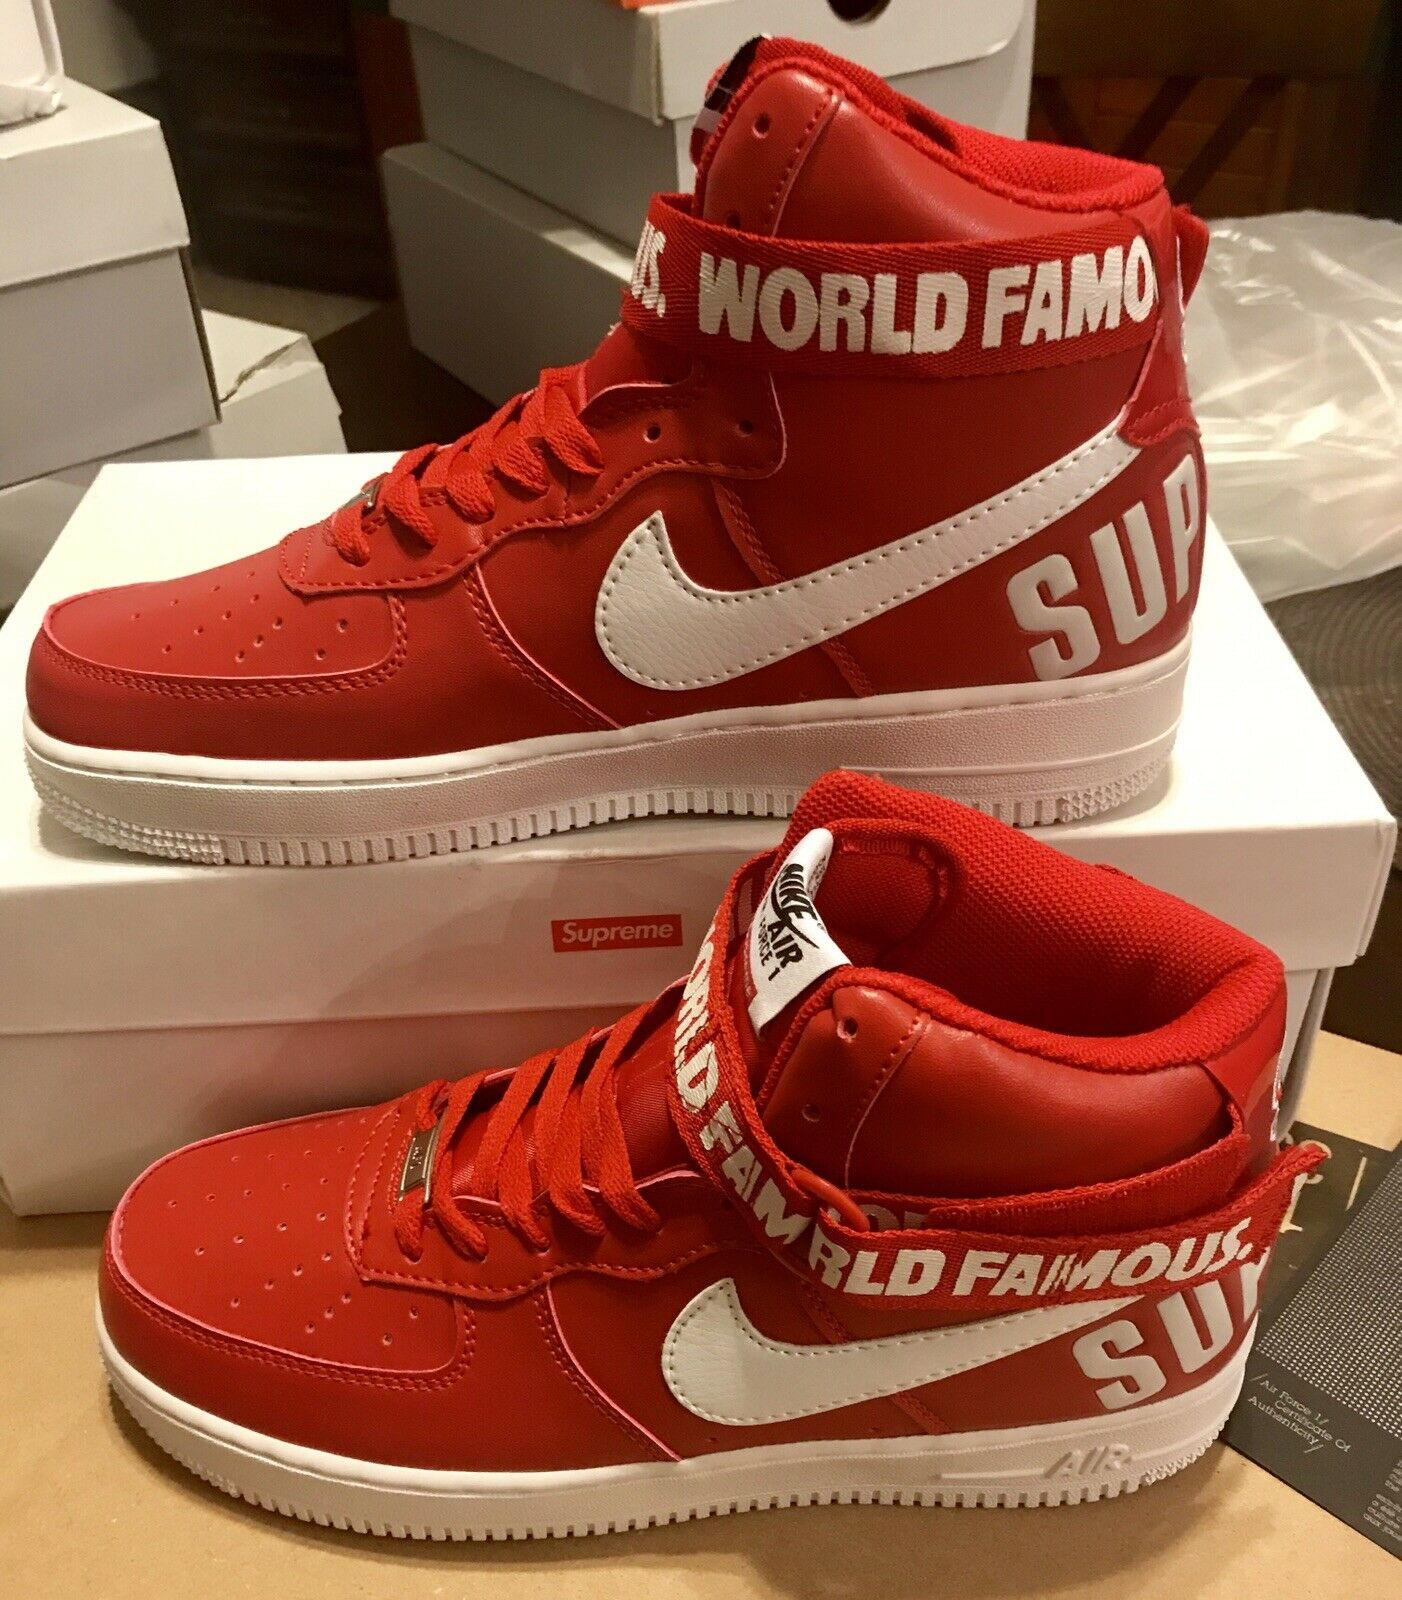 check out 53ef5 a3926 NIKE Air Force 1 High SUPREME X World famous Red White Size 9.5 698696 610  NIB. New DS Air Jordan 12 Retro ...